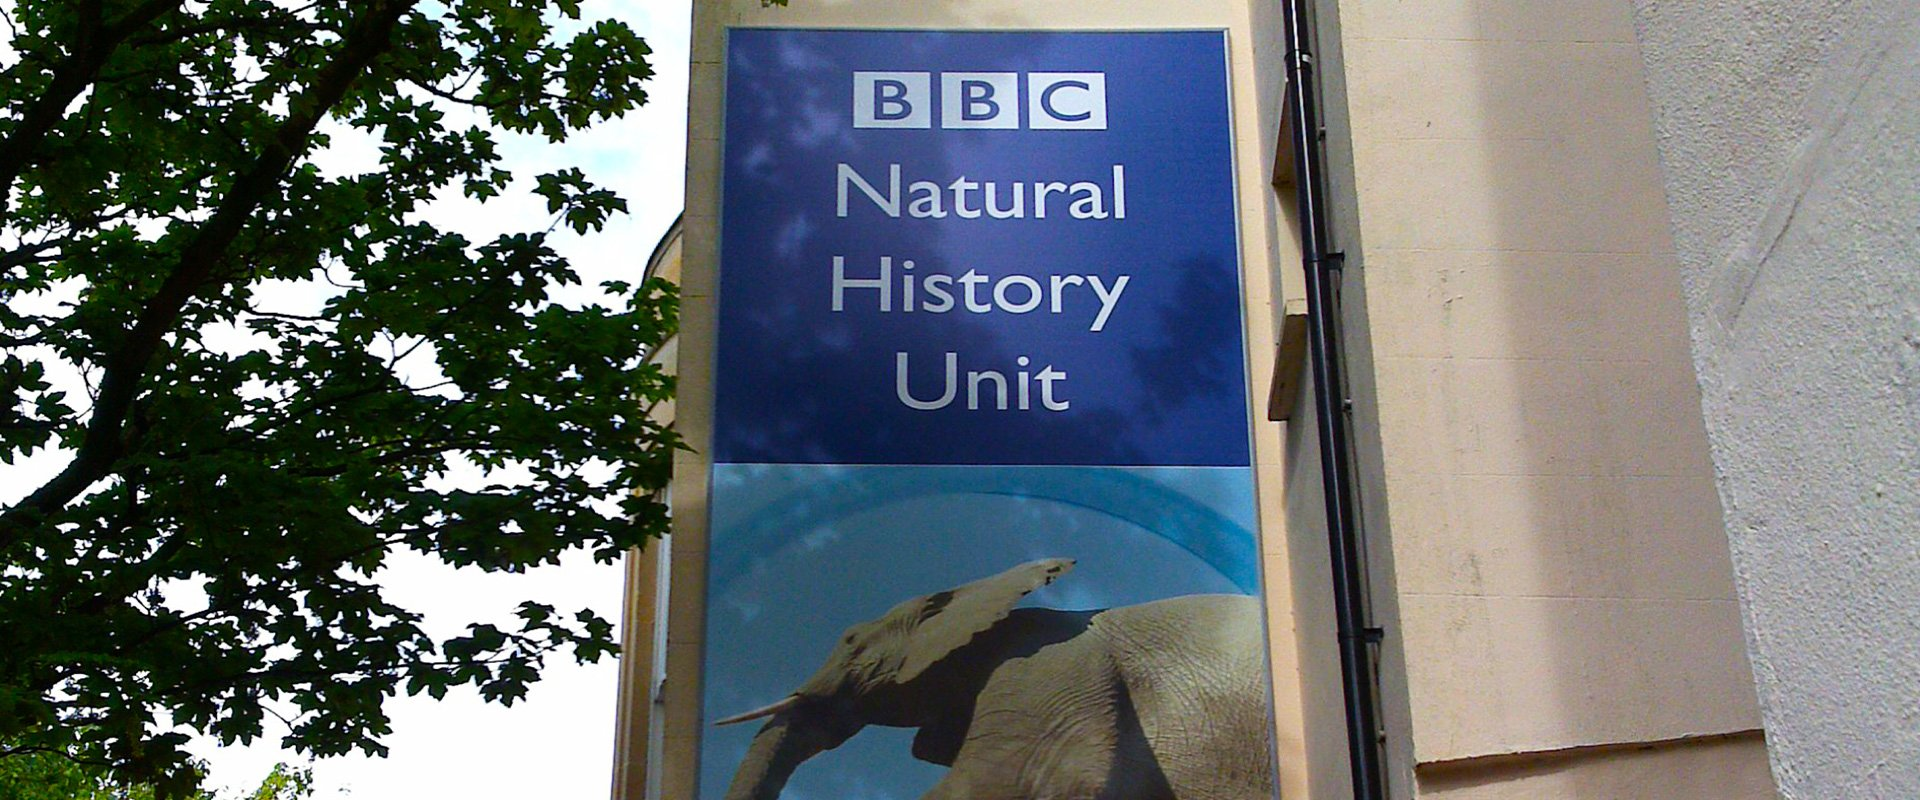 BBC Natural History Unit external signage branding